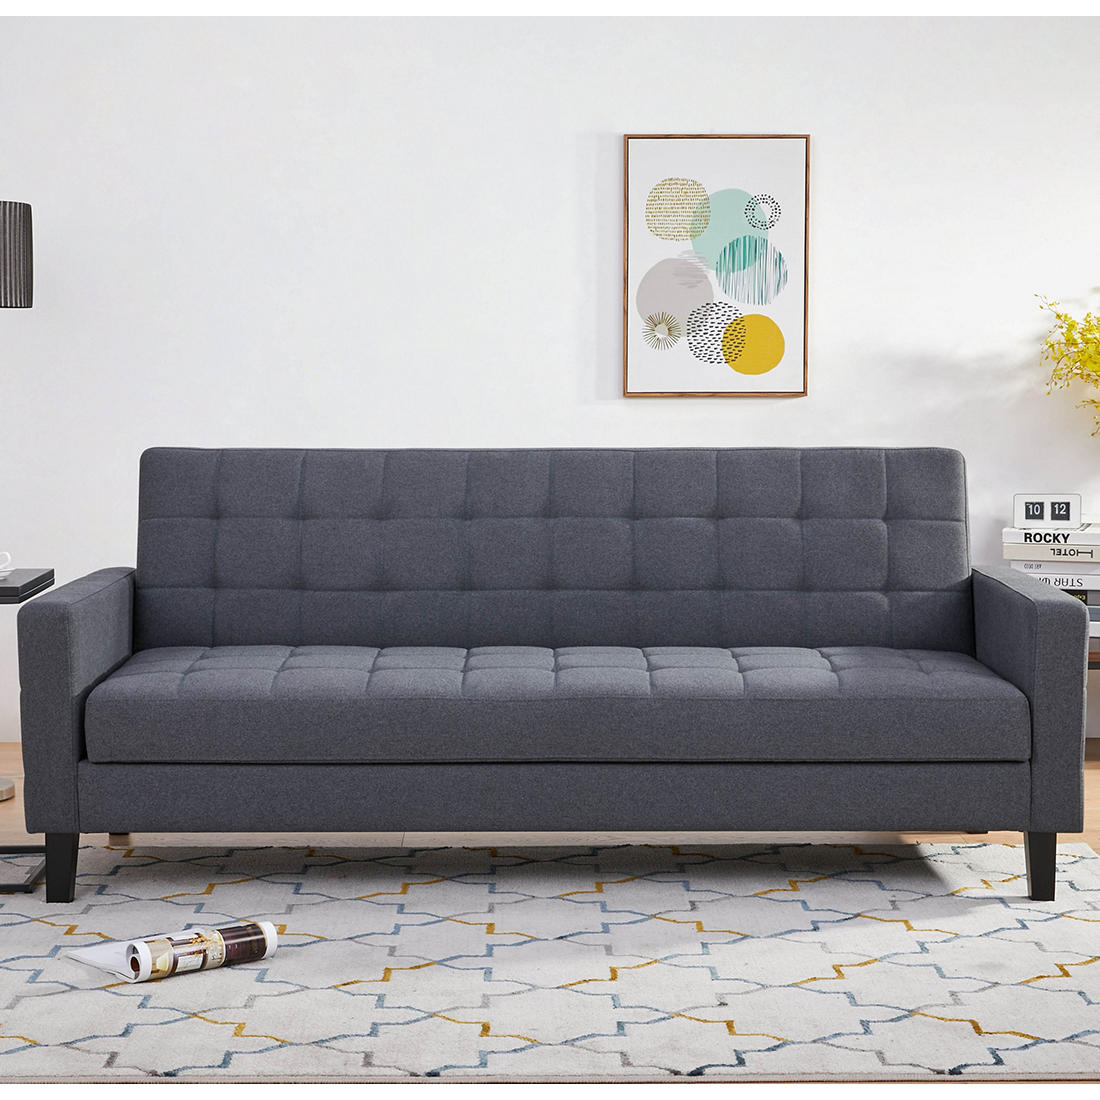 Outstanding Abbyson Living Jackson Click Clack Sofa Bed With Storage Gray Caraccident5 Cool Chair Designs And Ideas Caraccident5Info